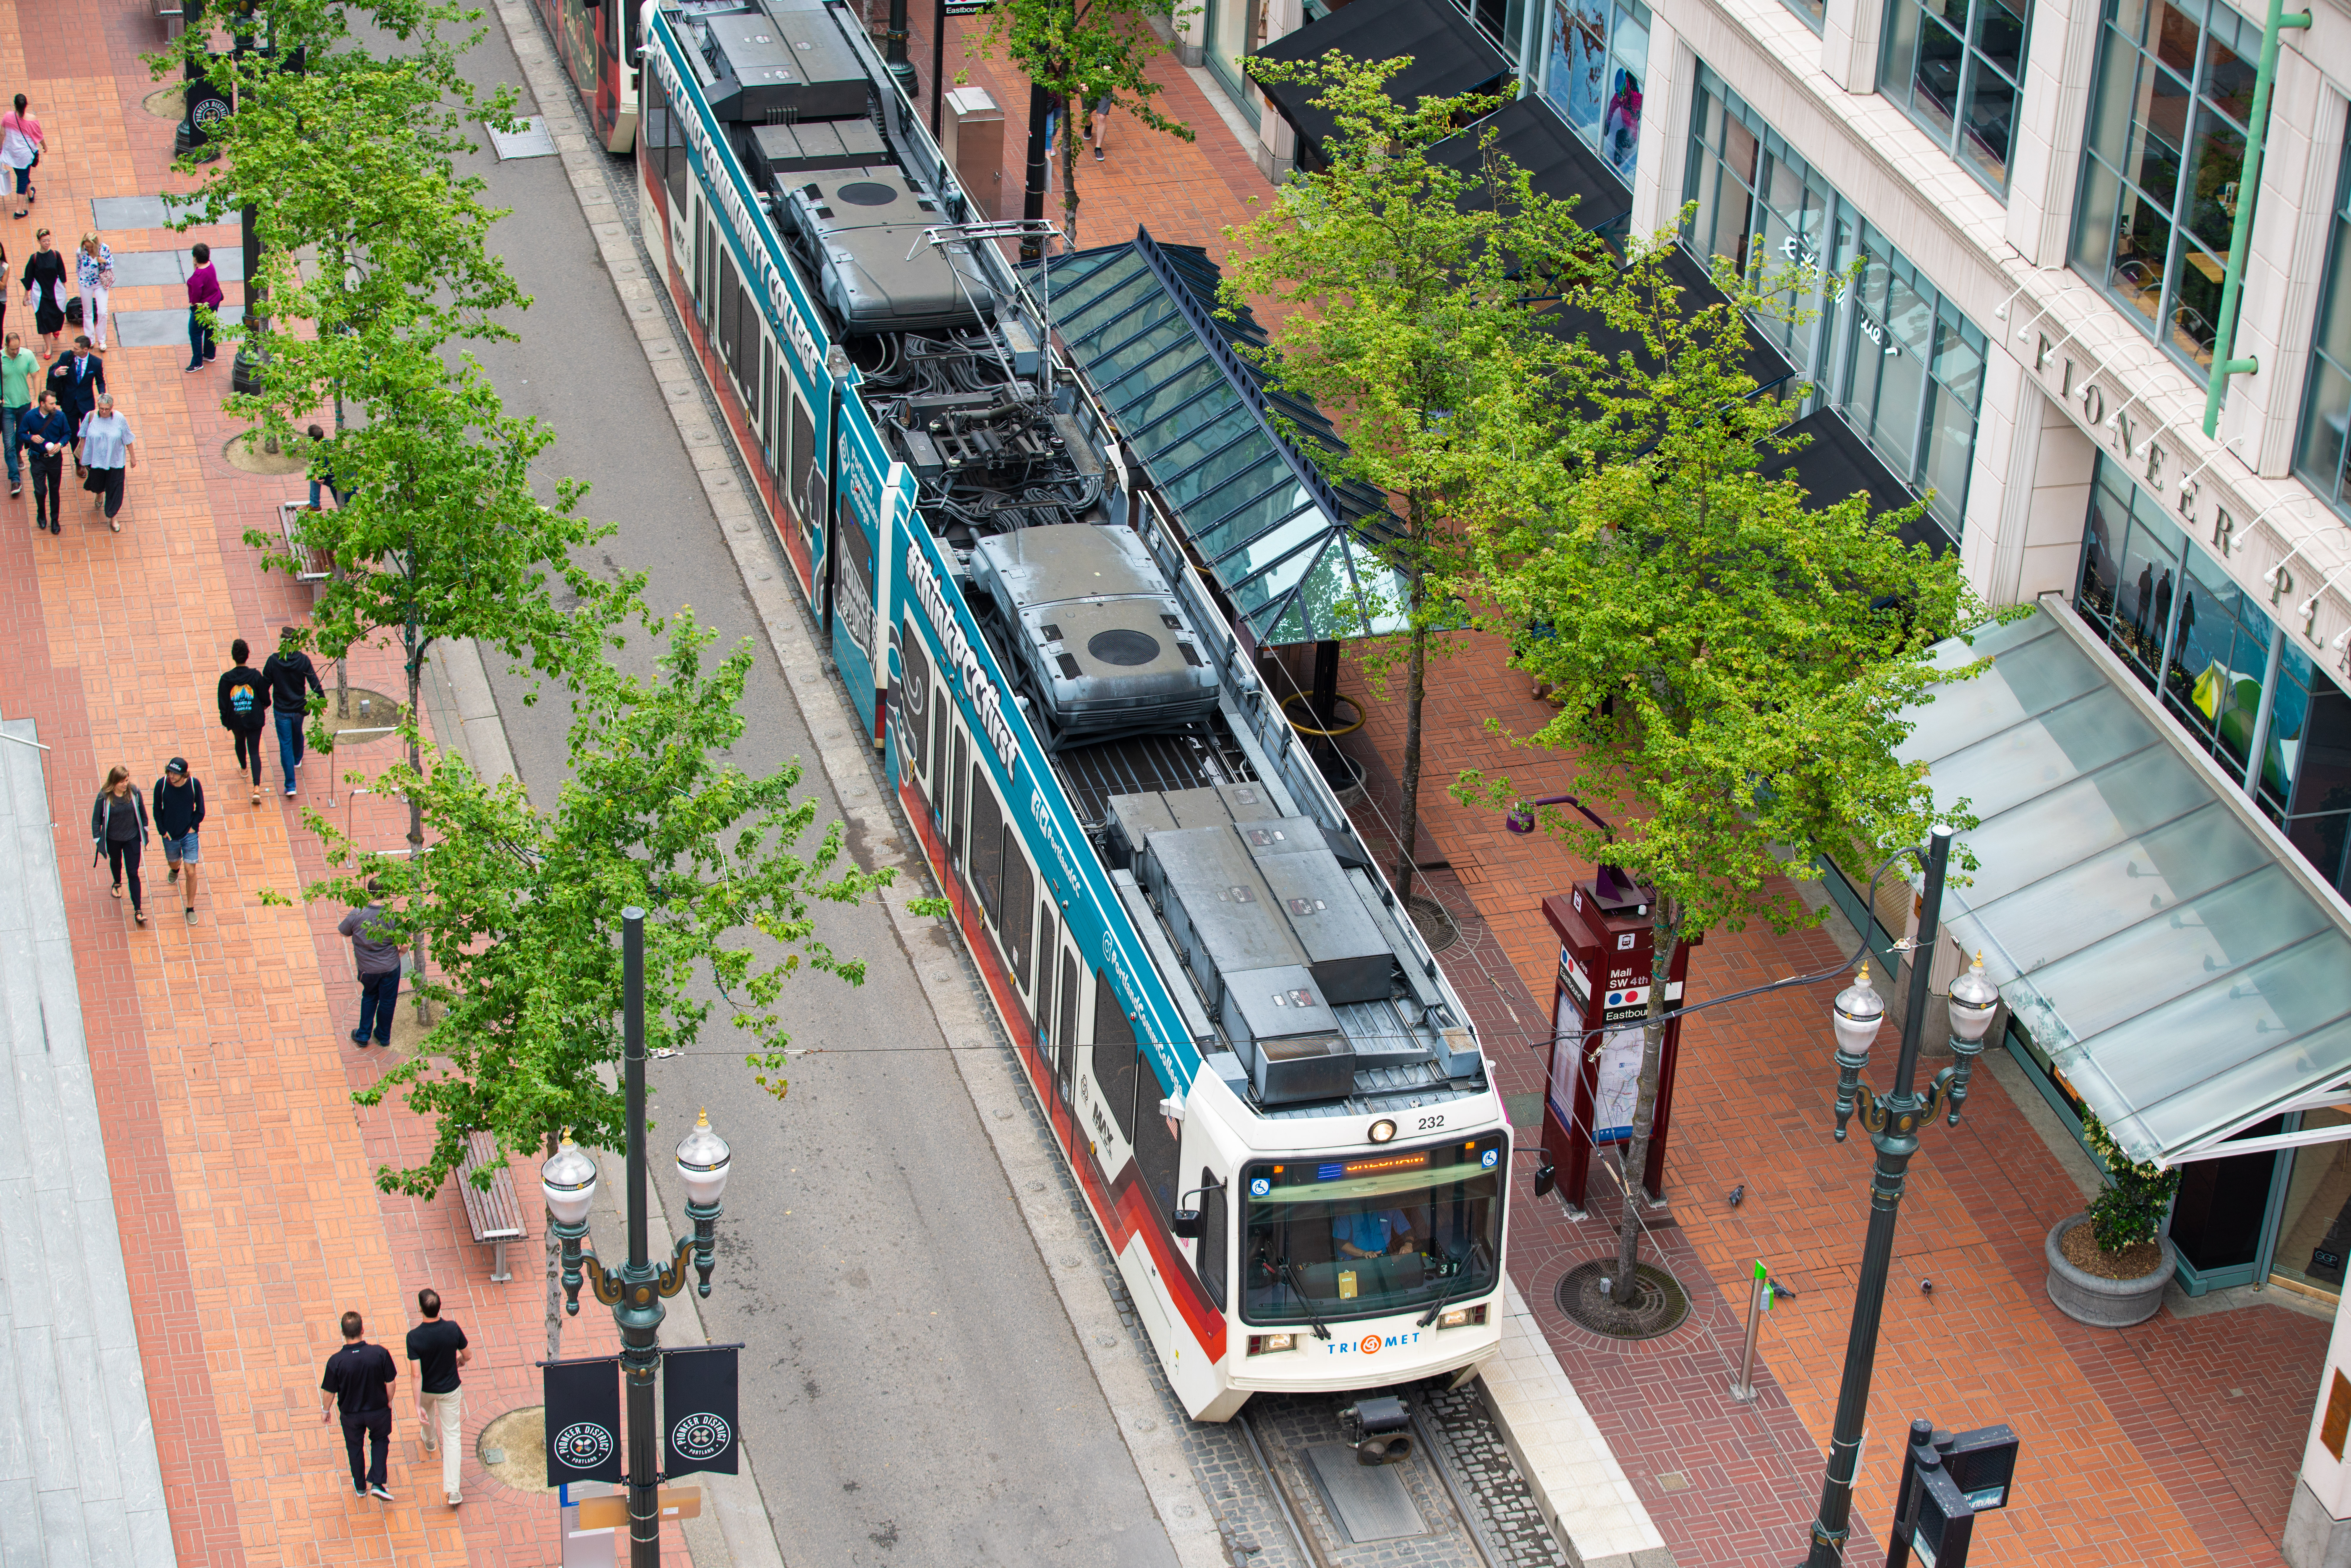 An areal photo of a train with trees nearby, likely near Pioneer Place